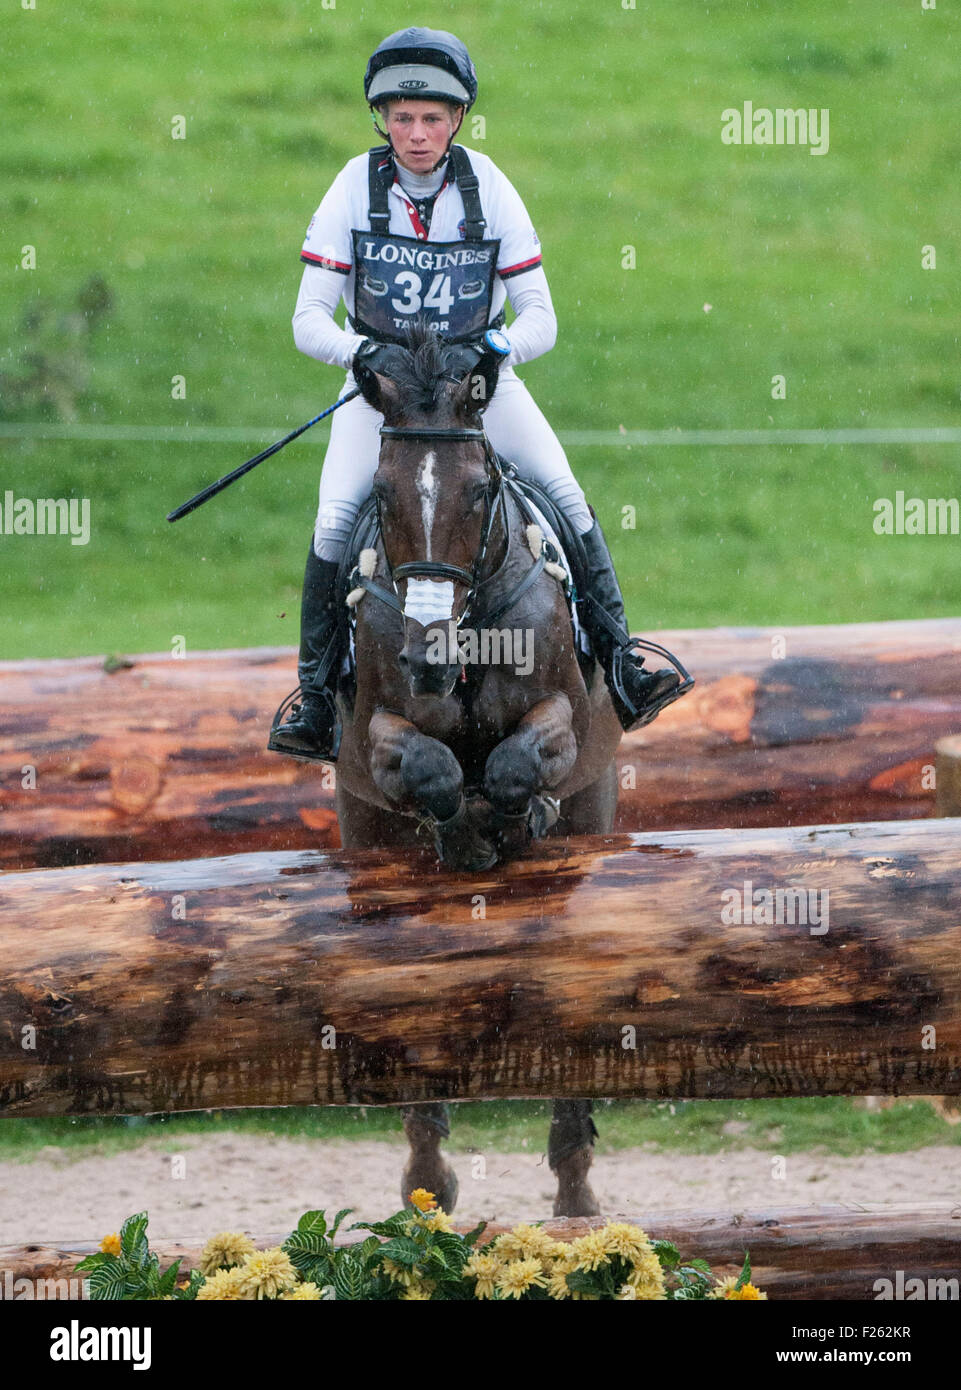 Blair Atholl, Perthshire, UK. 12th Sep, 2015. Izzy Taylor [GBR] riding KBIS Briarlands Matilda in action during - Stock Image